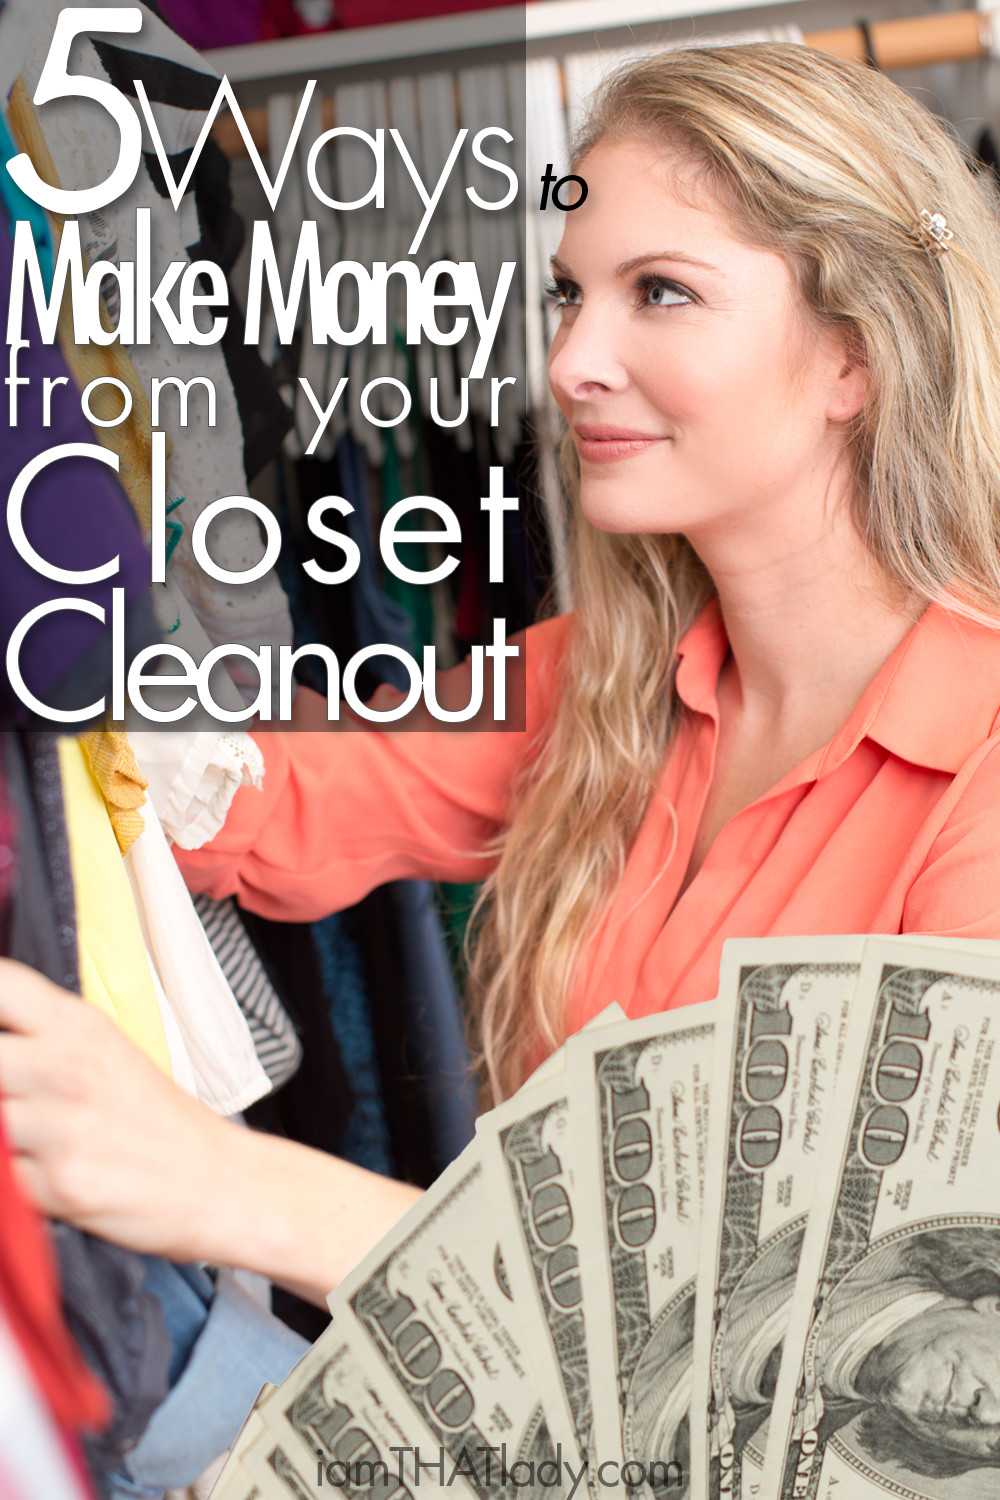 Clean out your closet AND make money?! Yes! Here are 5 Ways to do just that!